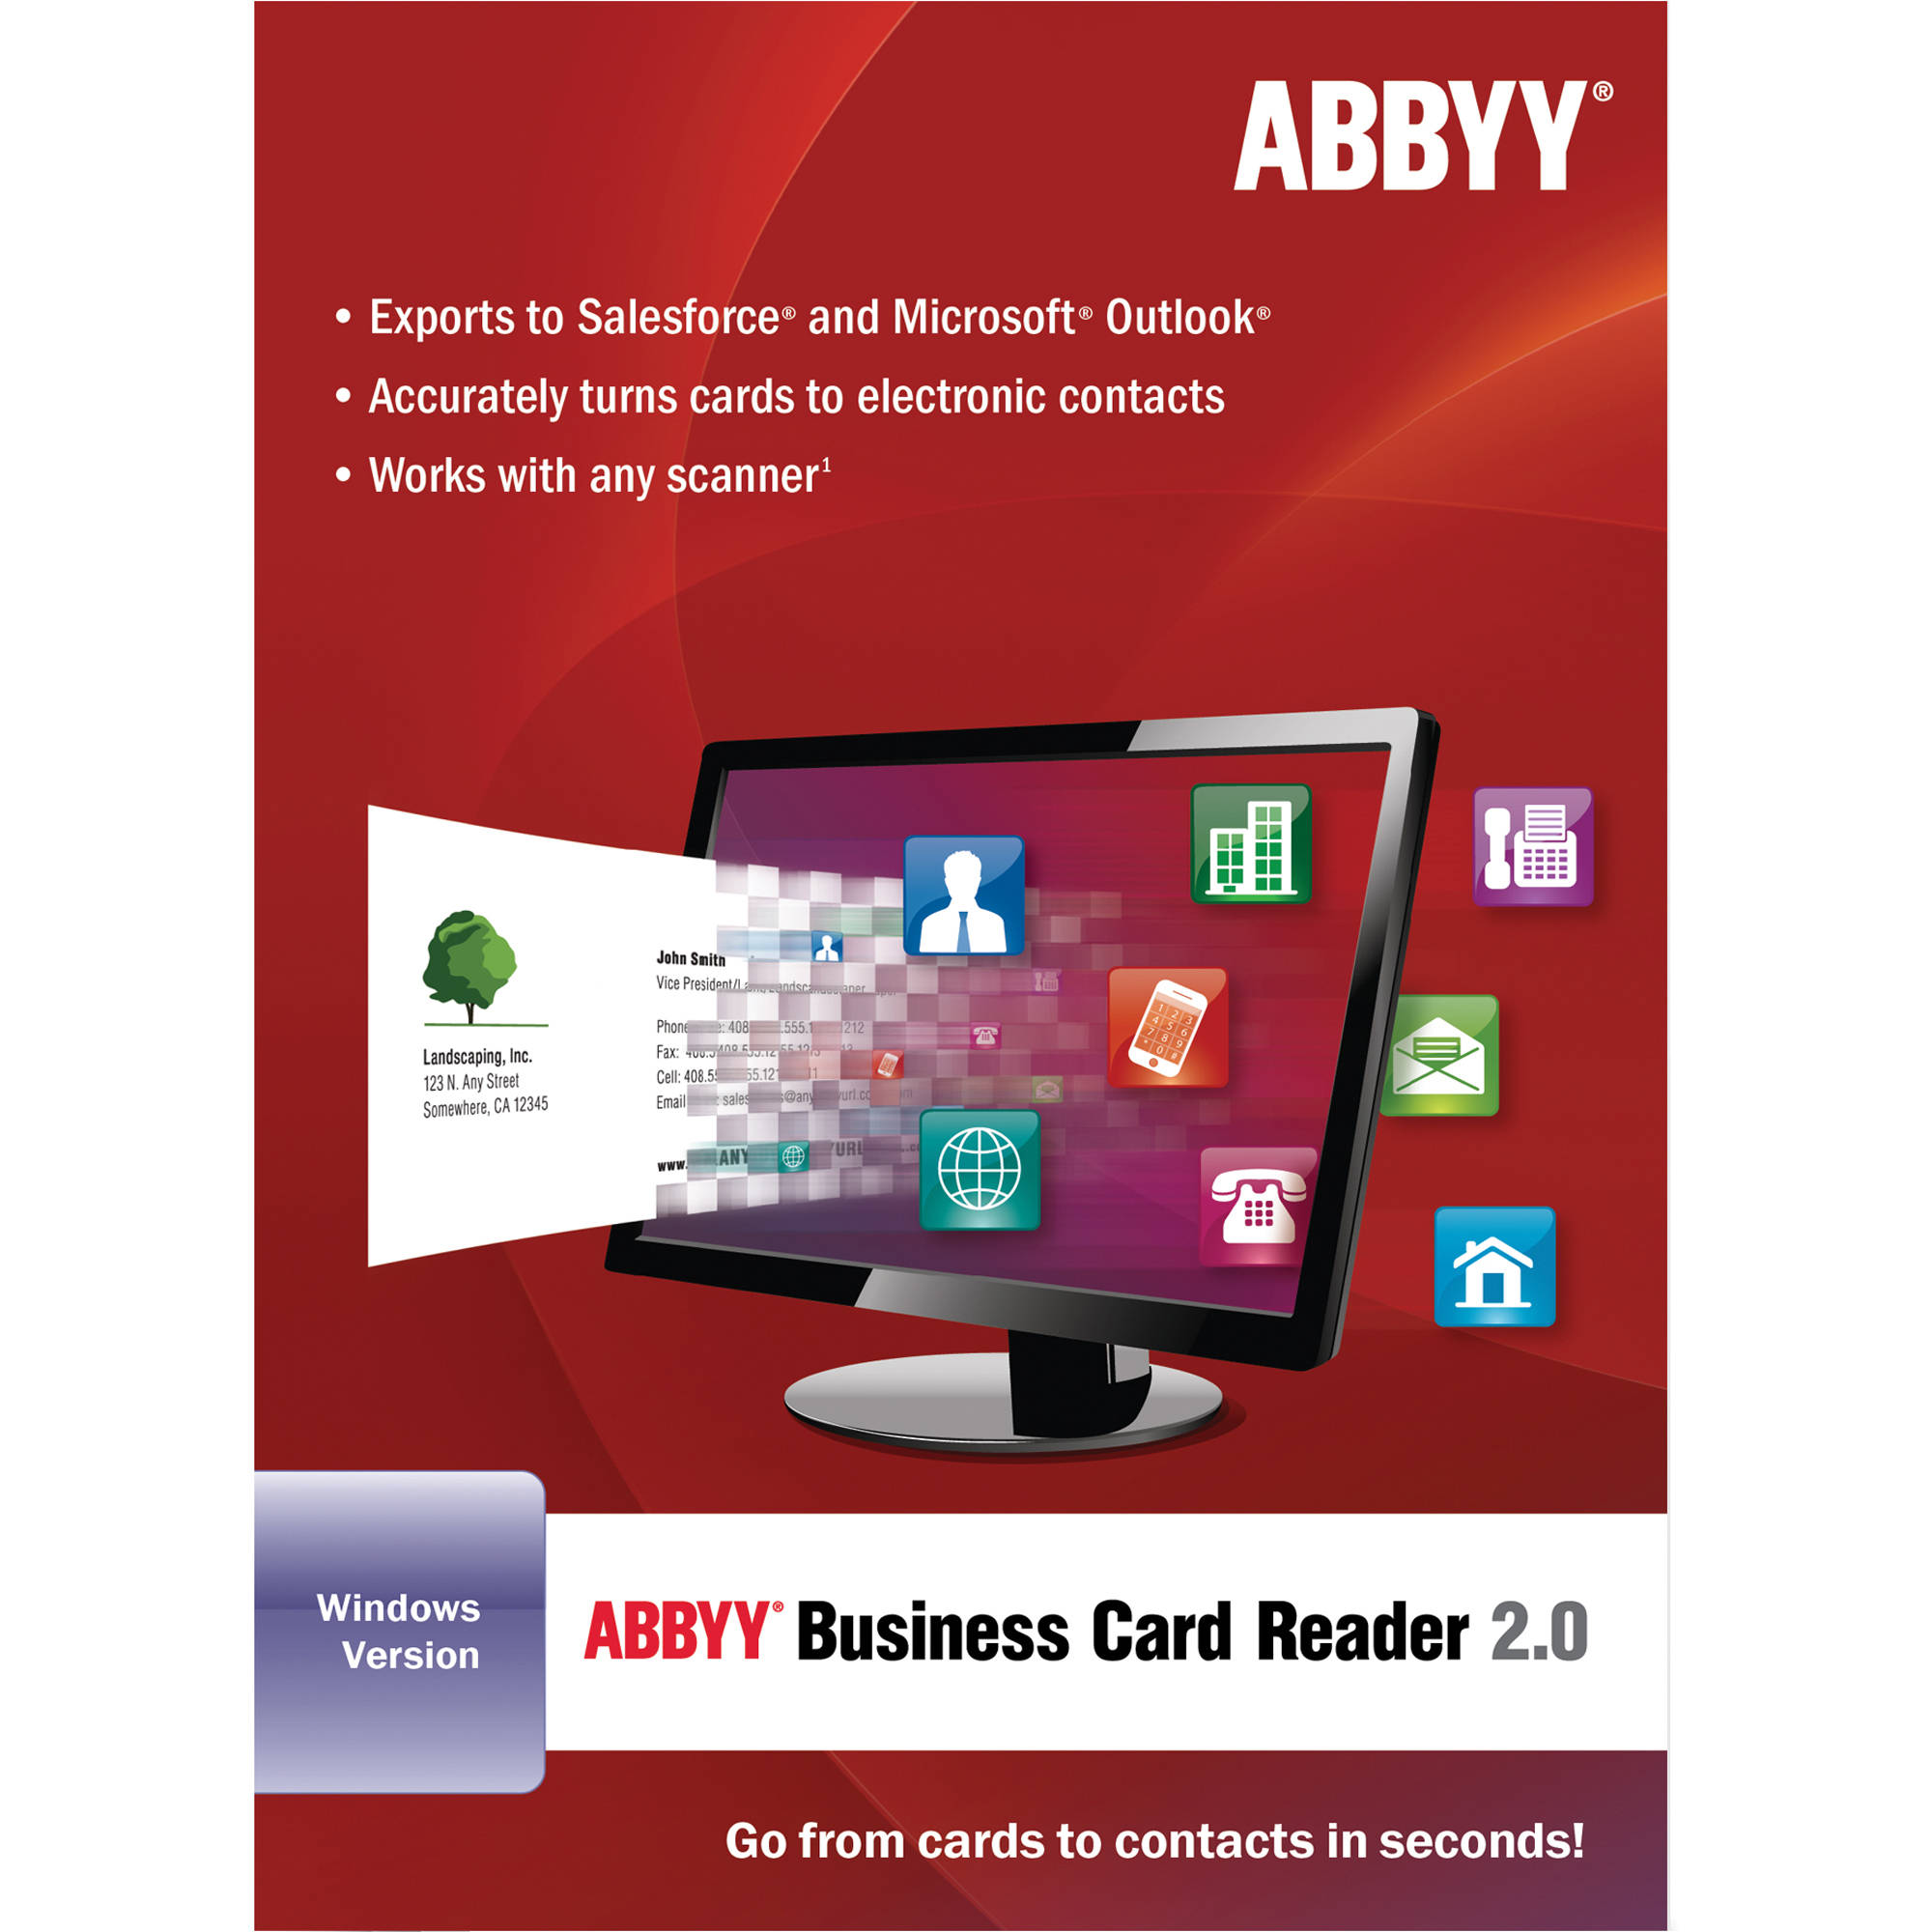 Abbyy abbyy business card reader 20 for windows frlbcrdfw2xb abbyy abbyy business card reader 20 for windows reheart Gallery